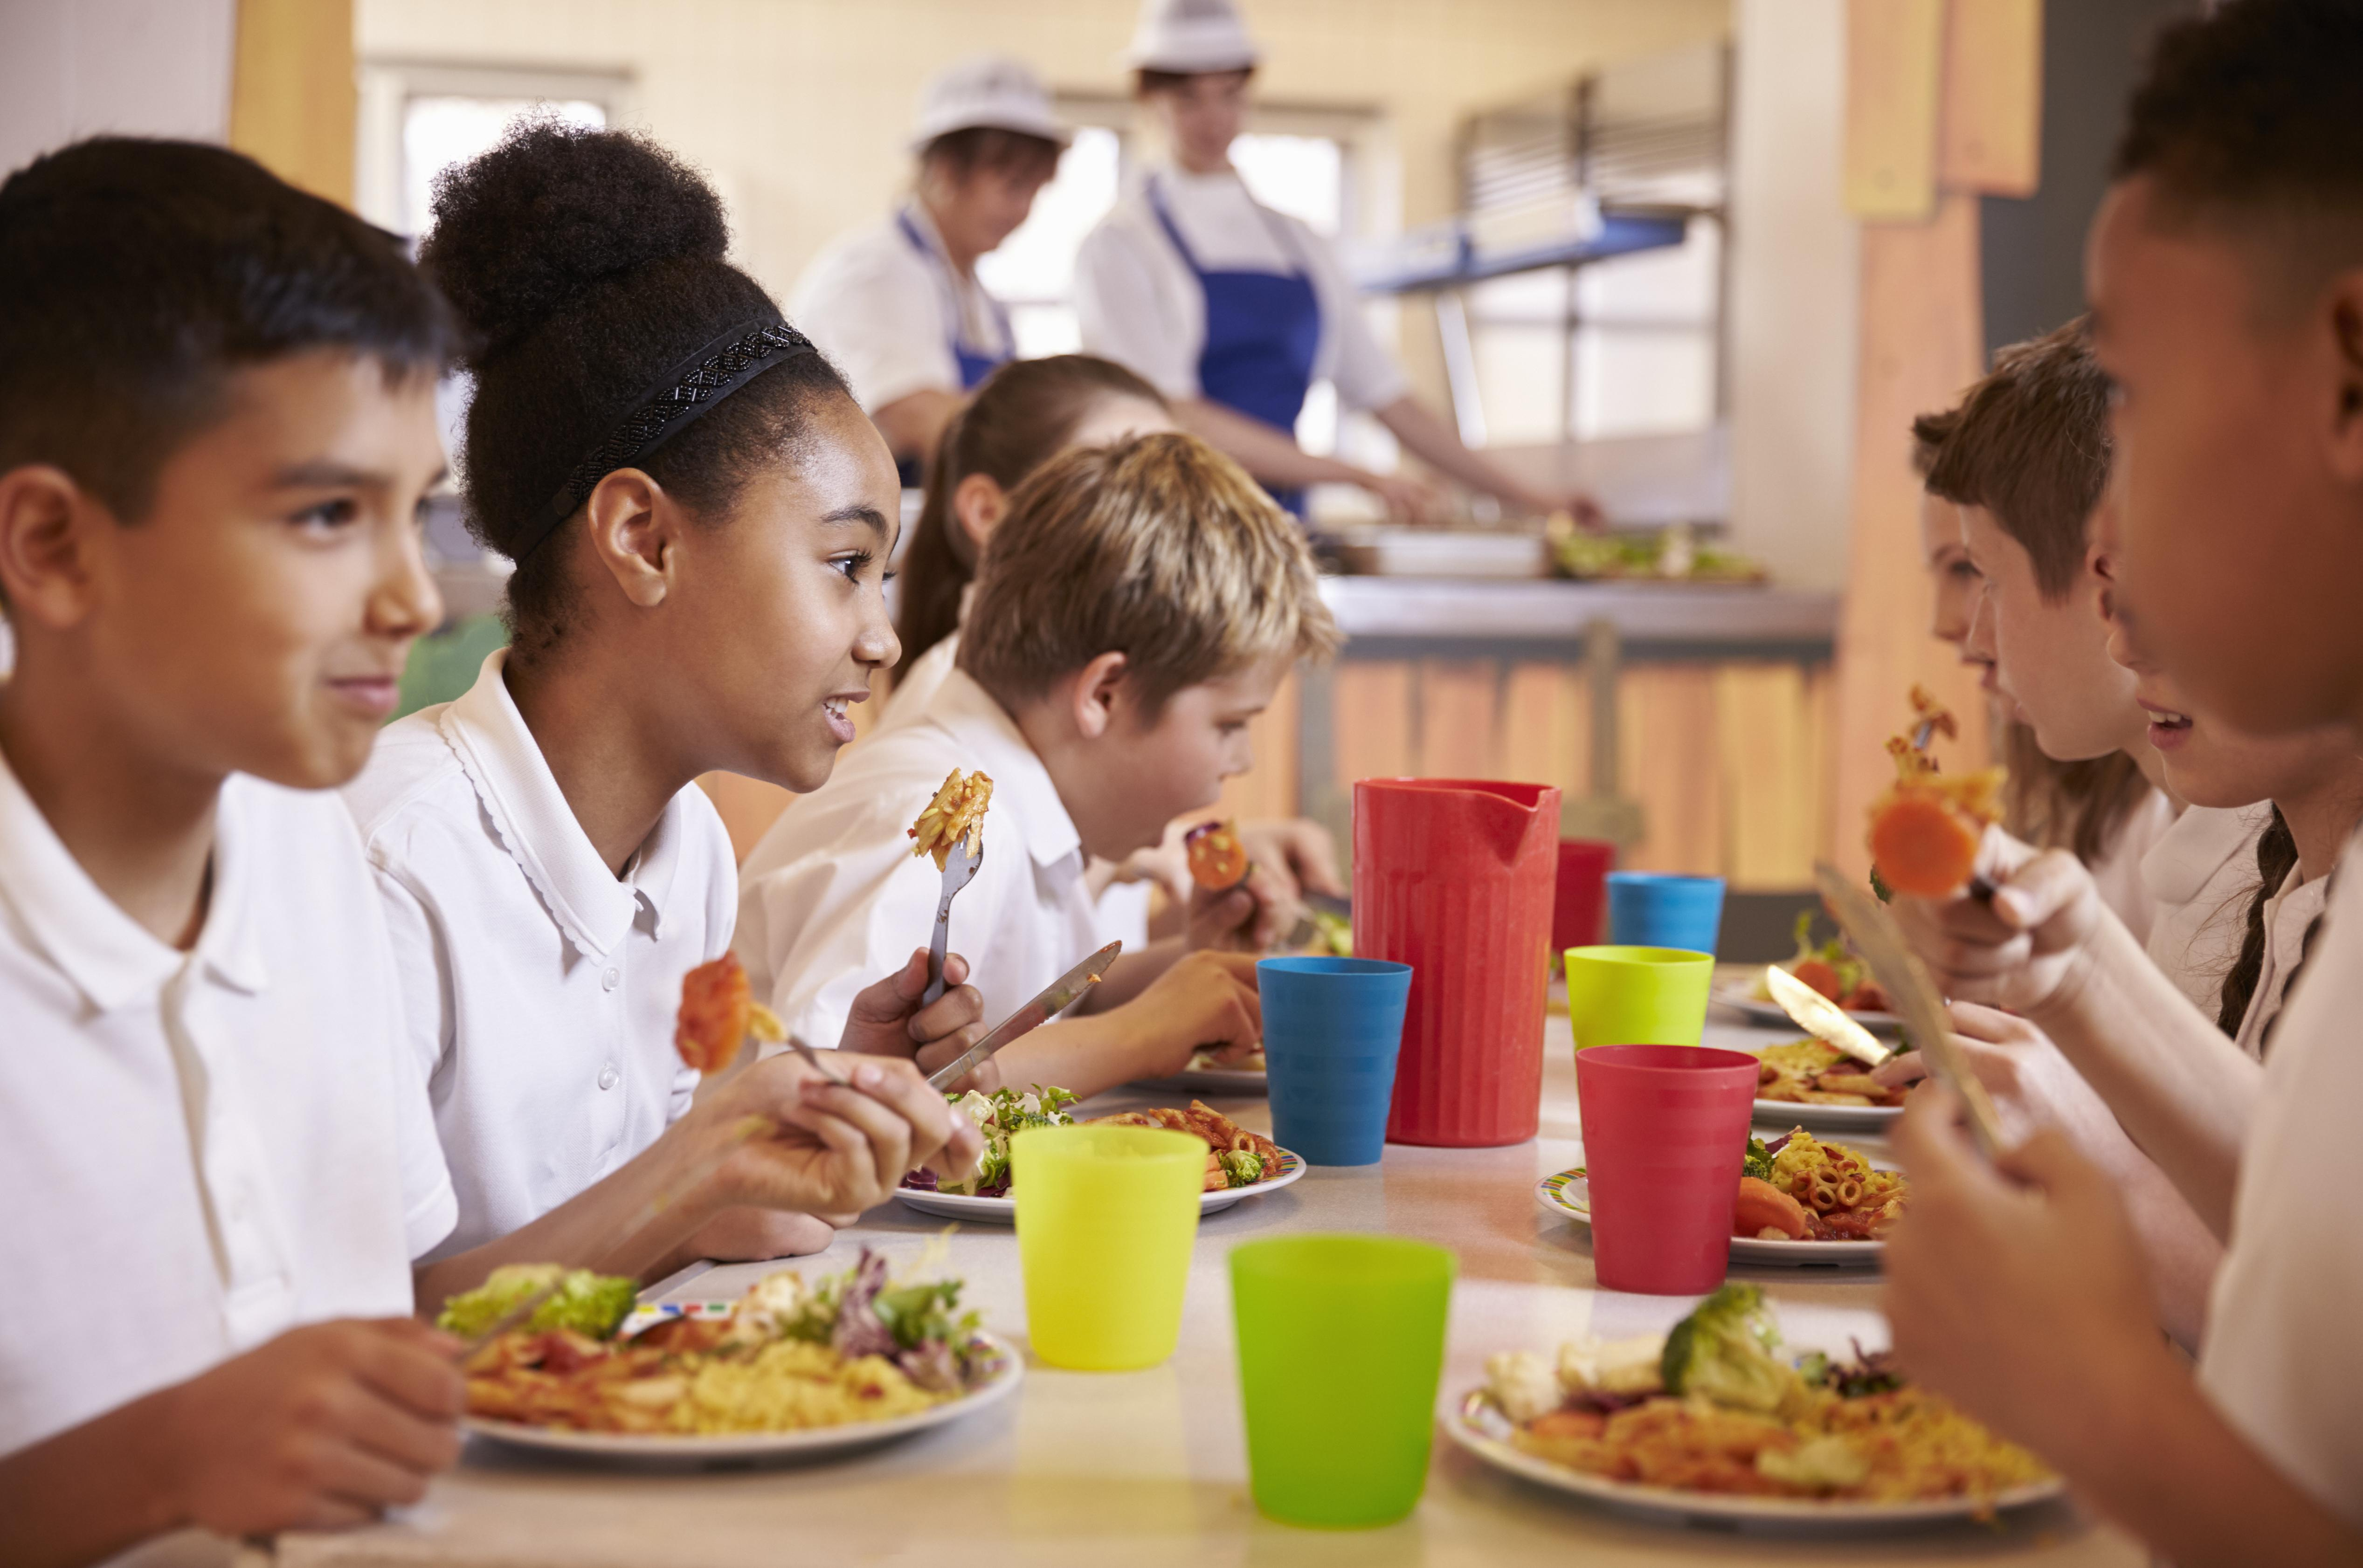 Good Eating Habits. A group of kids eating a healthy meal.